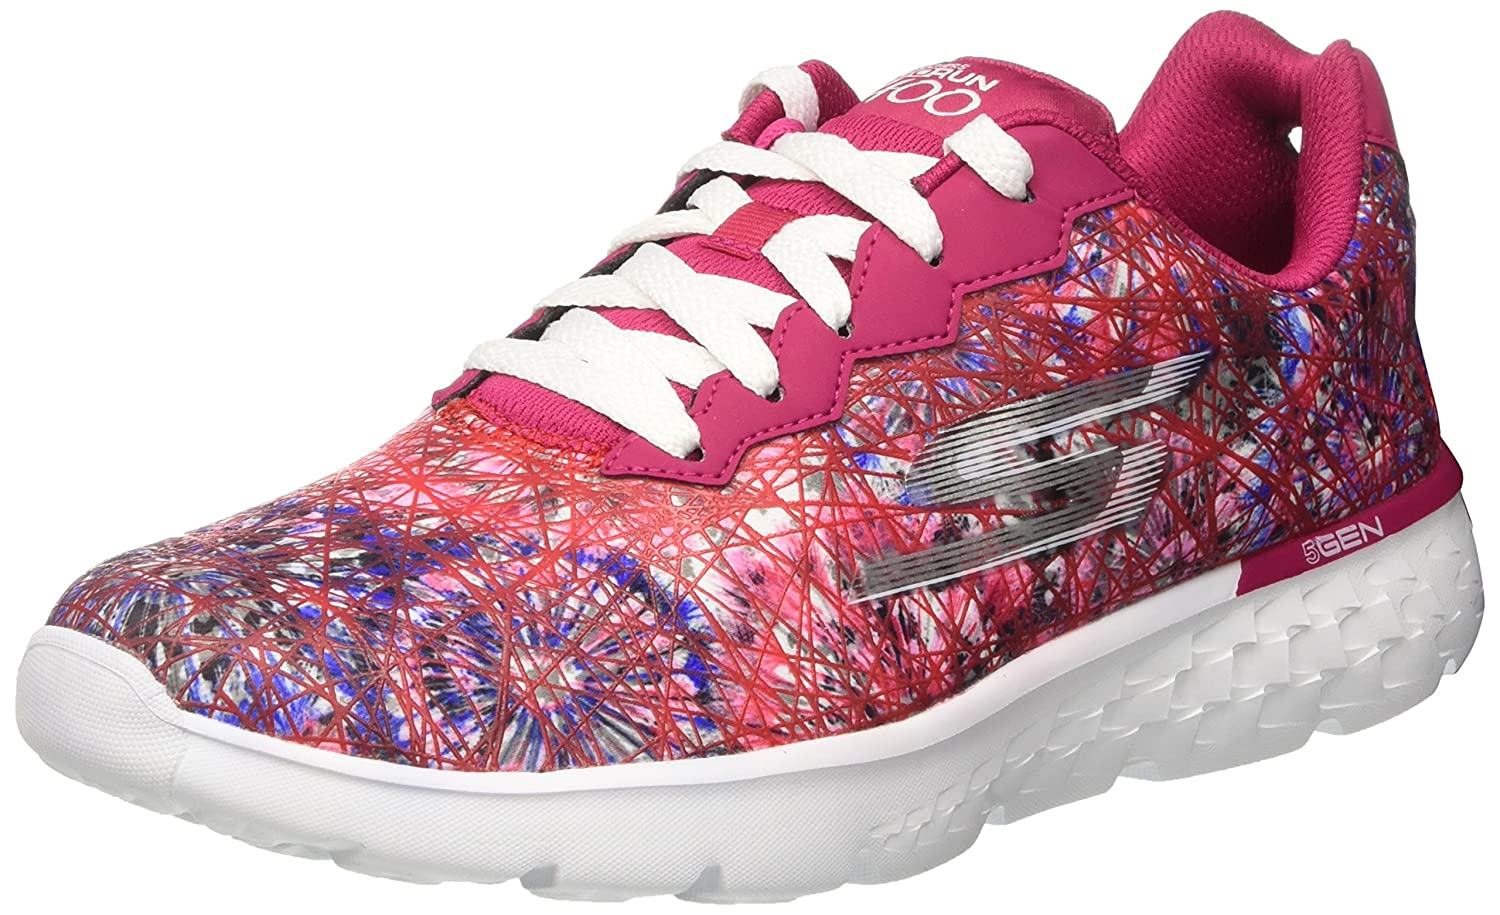 Skechers Performance Women's Go Run 400 Running Shoe B01JGVPS7S 5.5 B(M) US|Pink